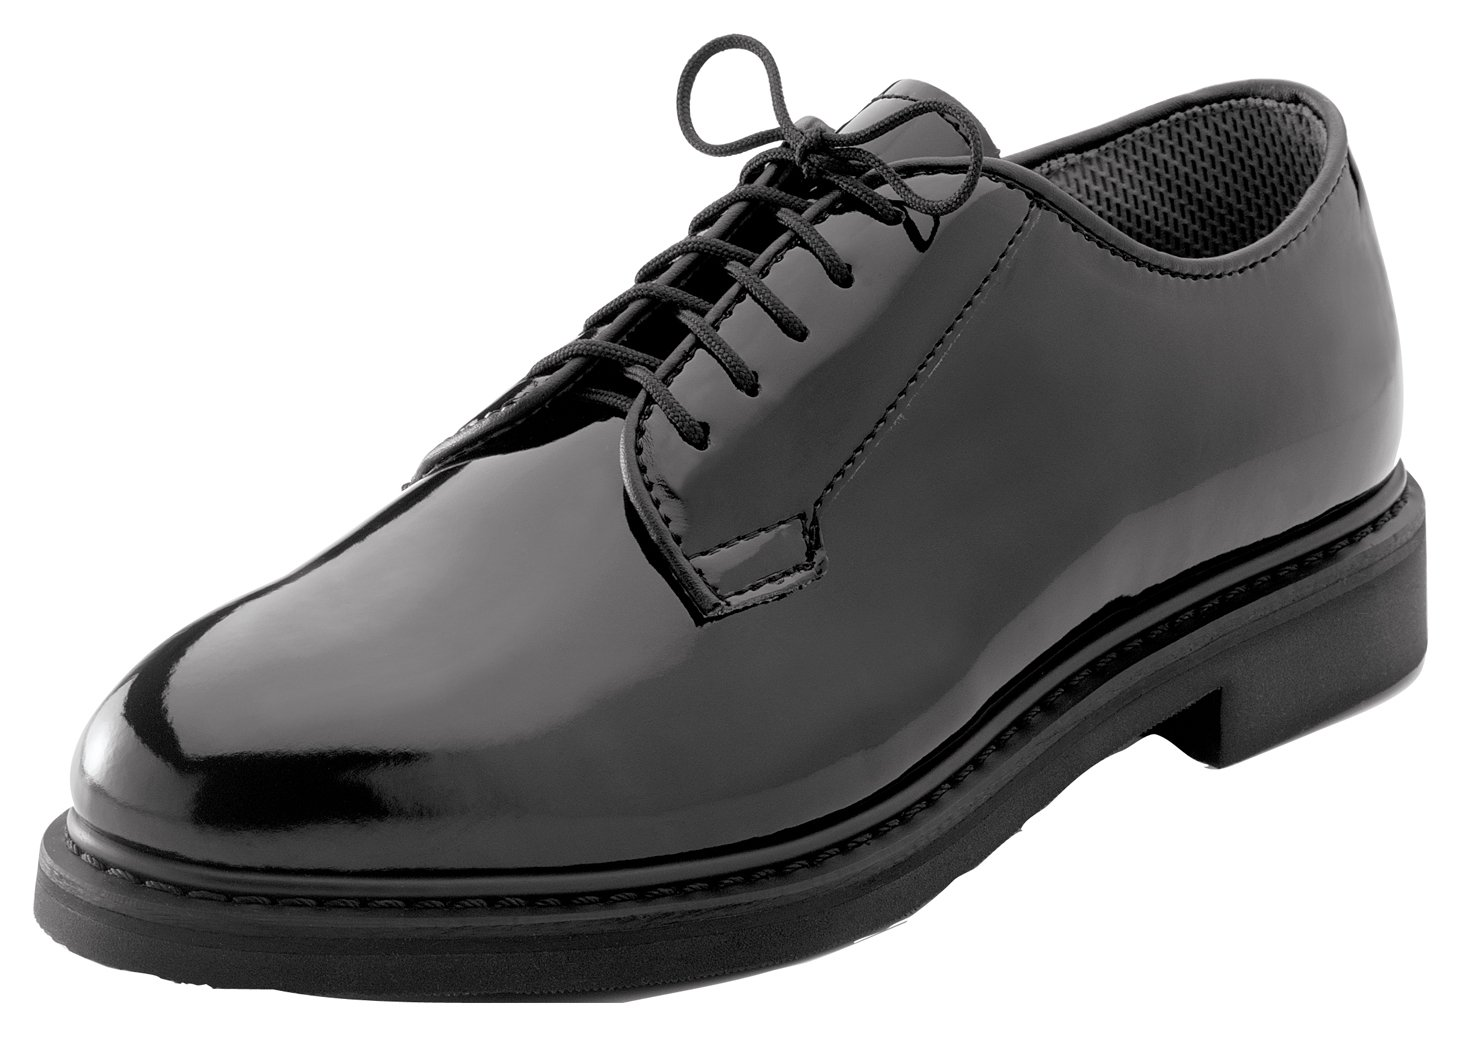 Rothco Uniform Oxford/Hi-Gloss Shoe, Black, W/9.5